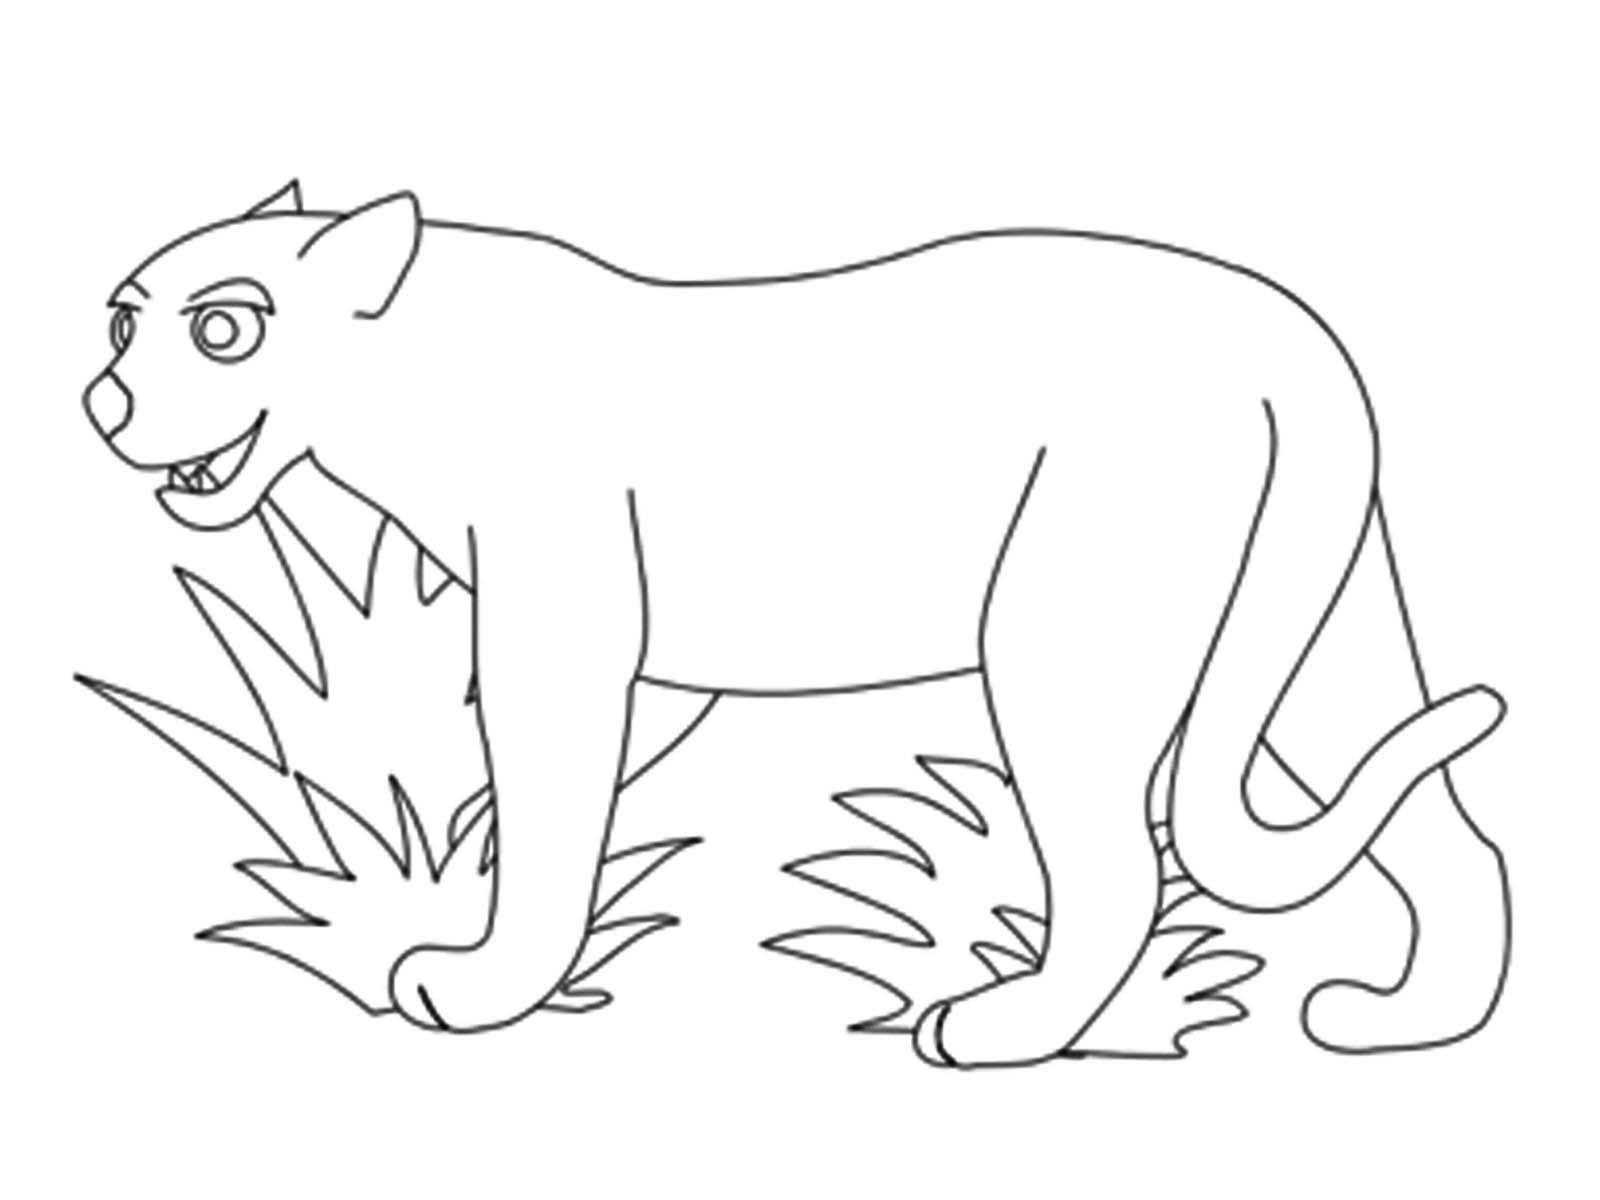 Coloring Animal Pattern Lion contour animals for cutting the stencil paper